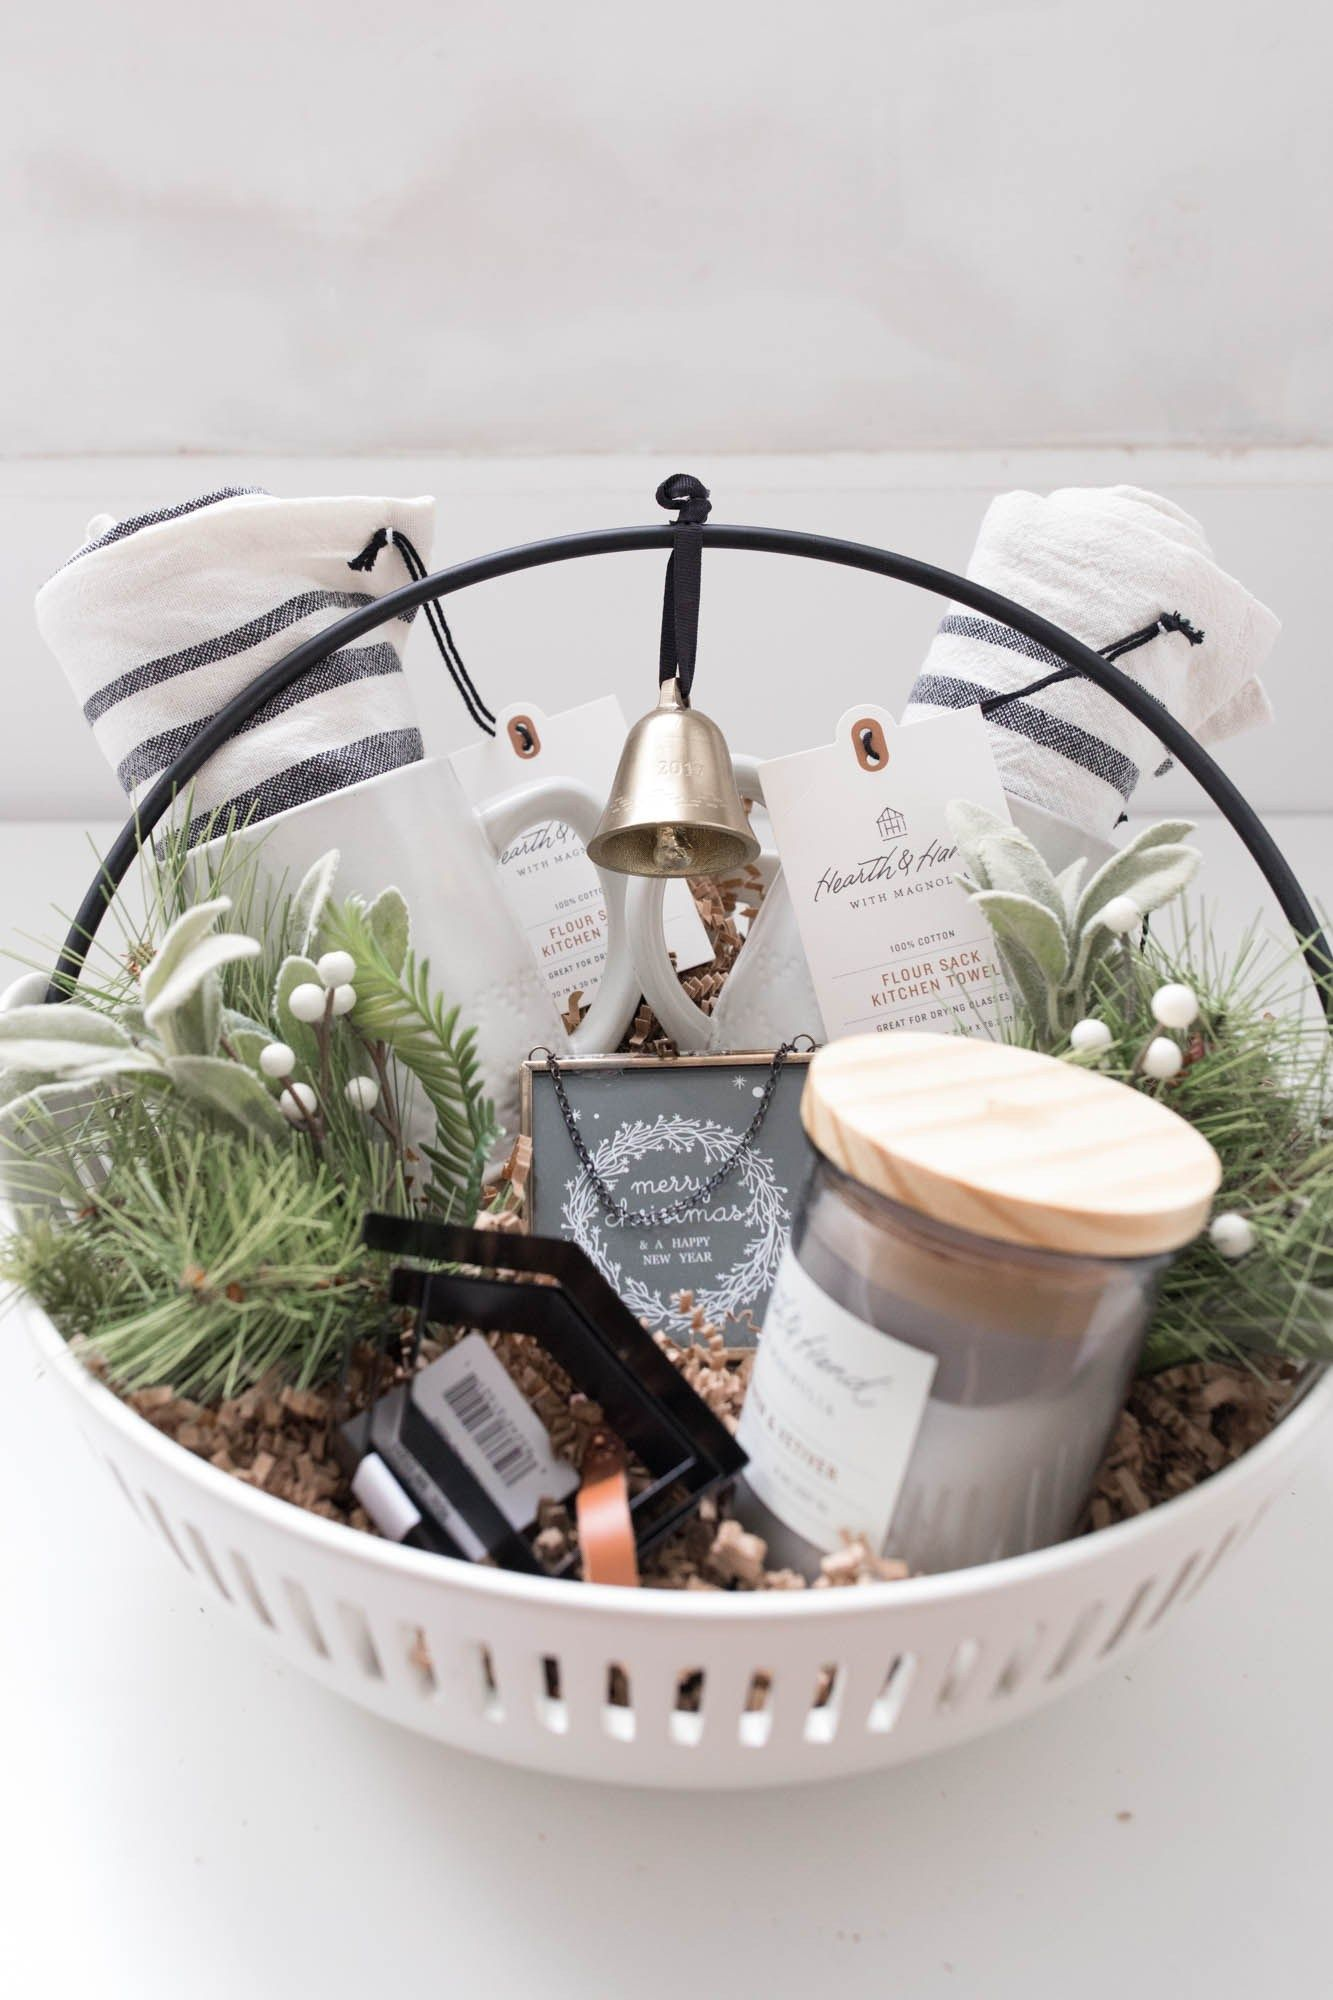 Hearth and Hand Gift Basket- Gift Guide for the Farmhouse Decor Fan - Farmhouse on Boone